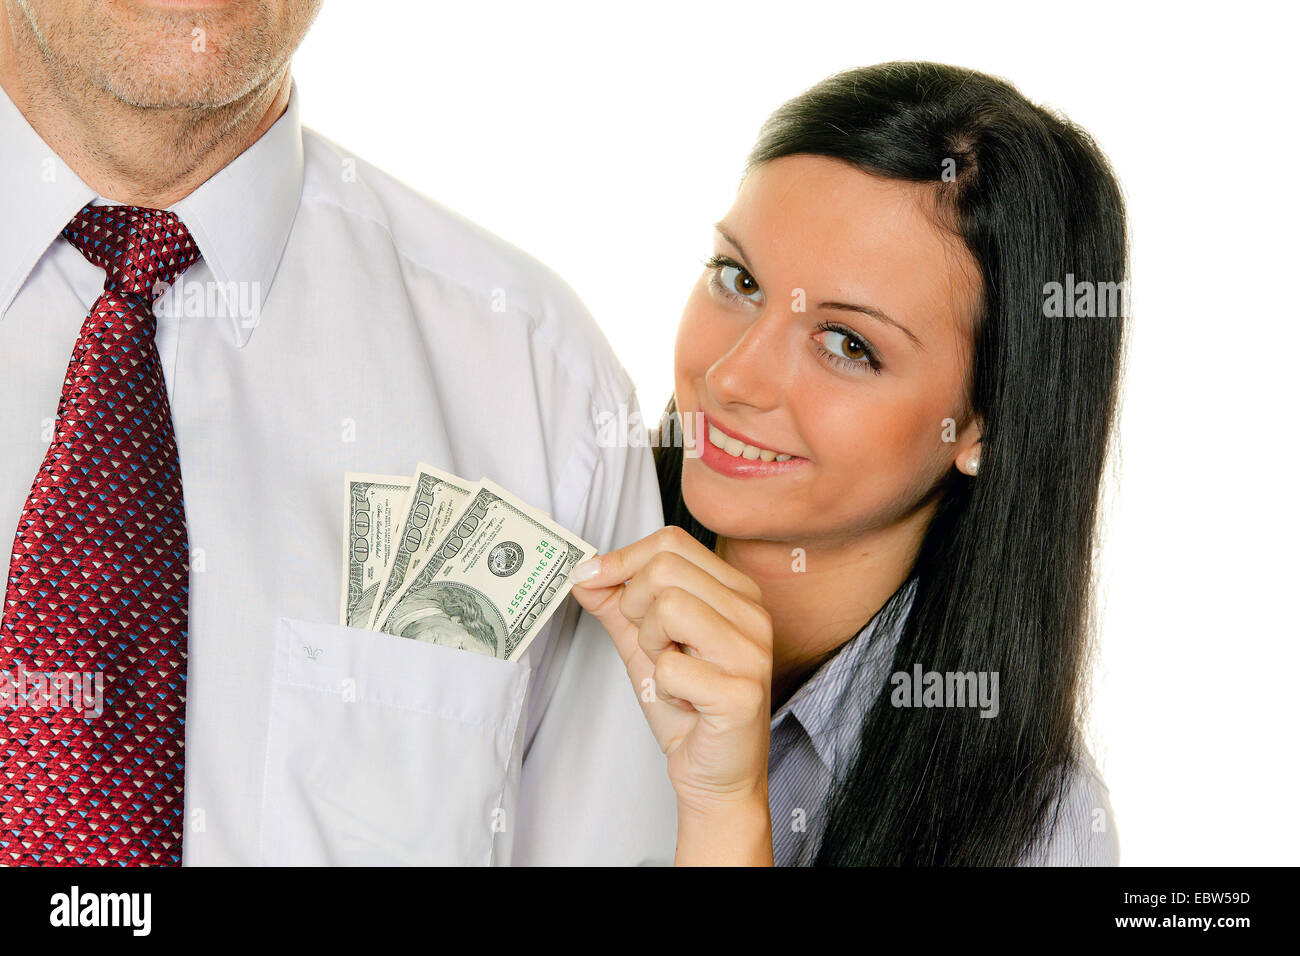 young woman squeeze money out of a man - Stock Image